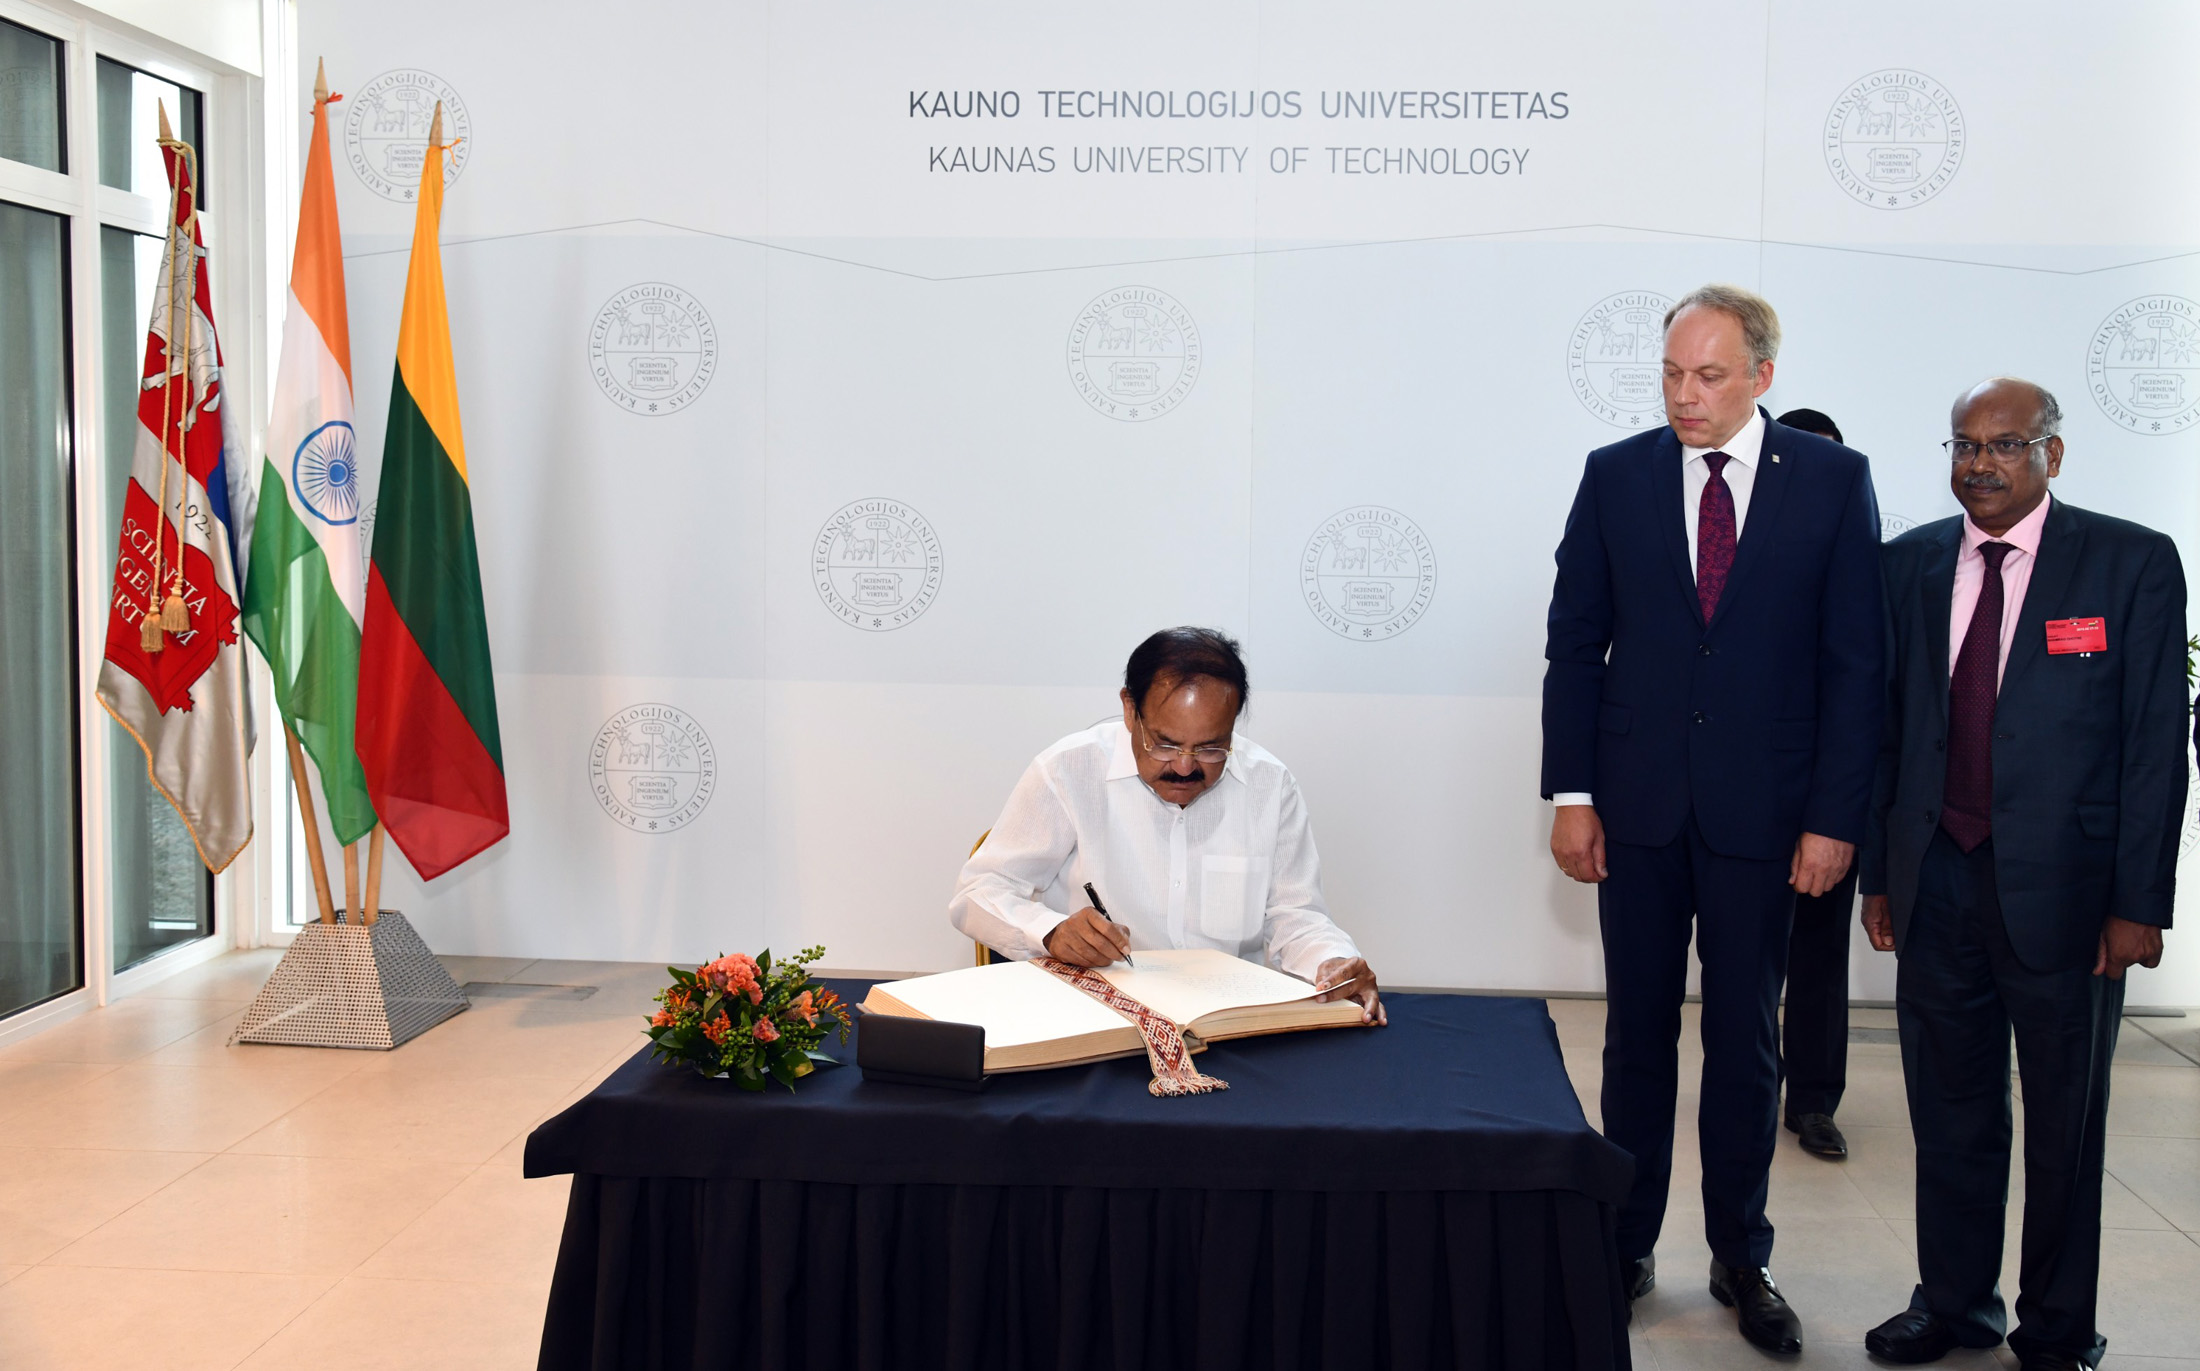 The Vice President, Shri. M. Venkaiah Naidu signing the guest book at the Santaka Valley of the Kaunas University of Technology in Kaunas, Lithuania on August 18, 2019.